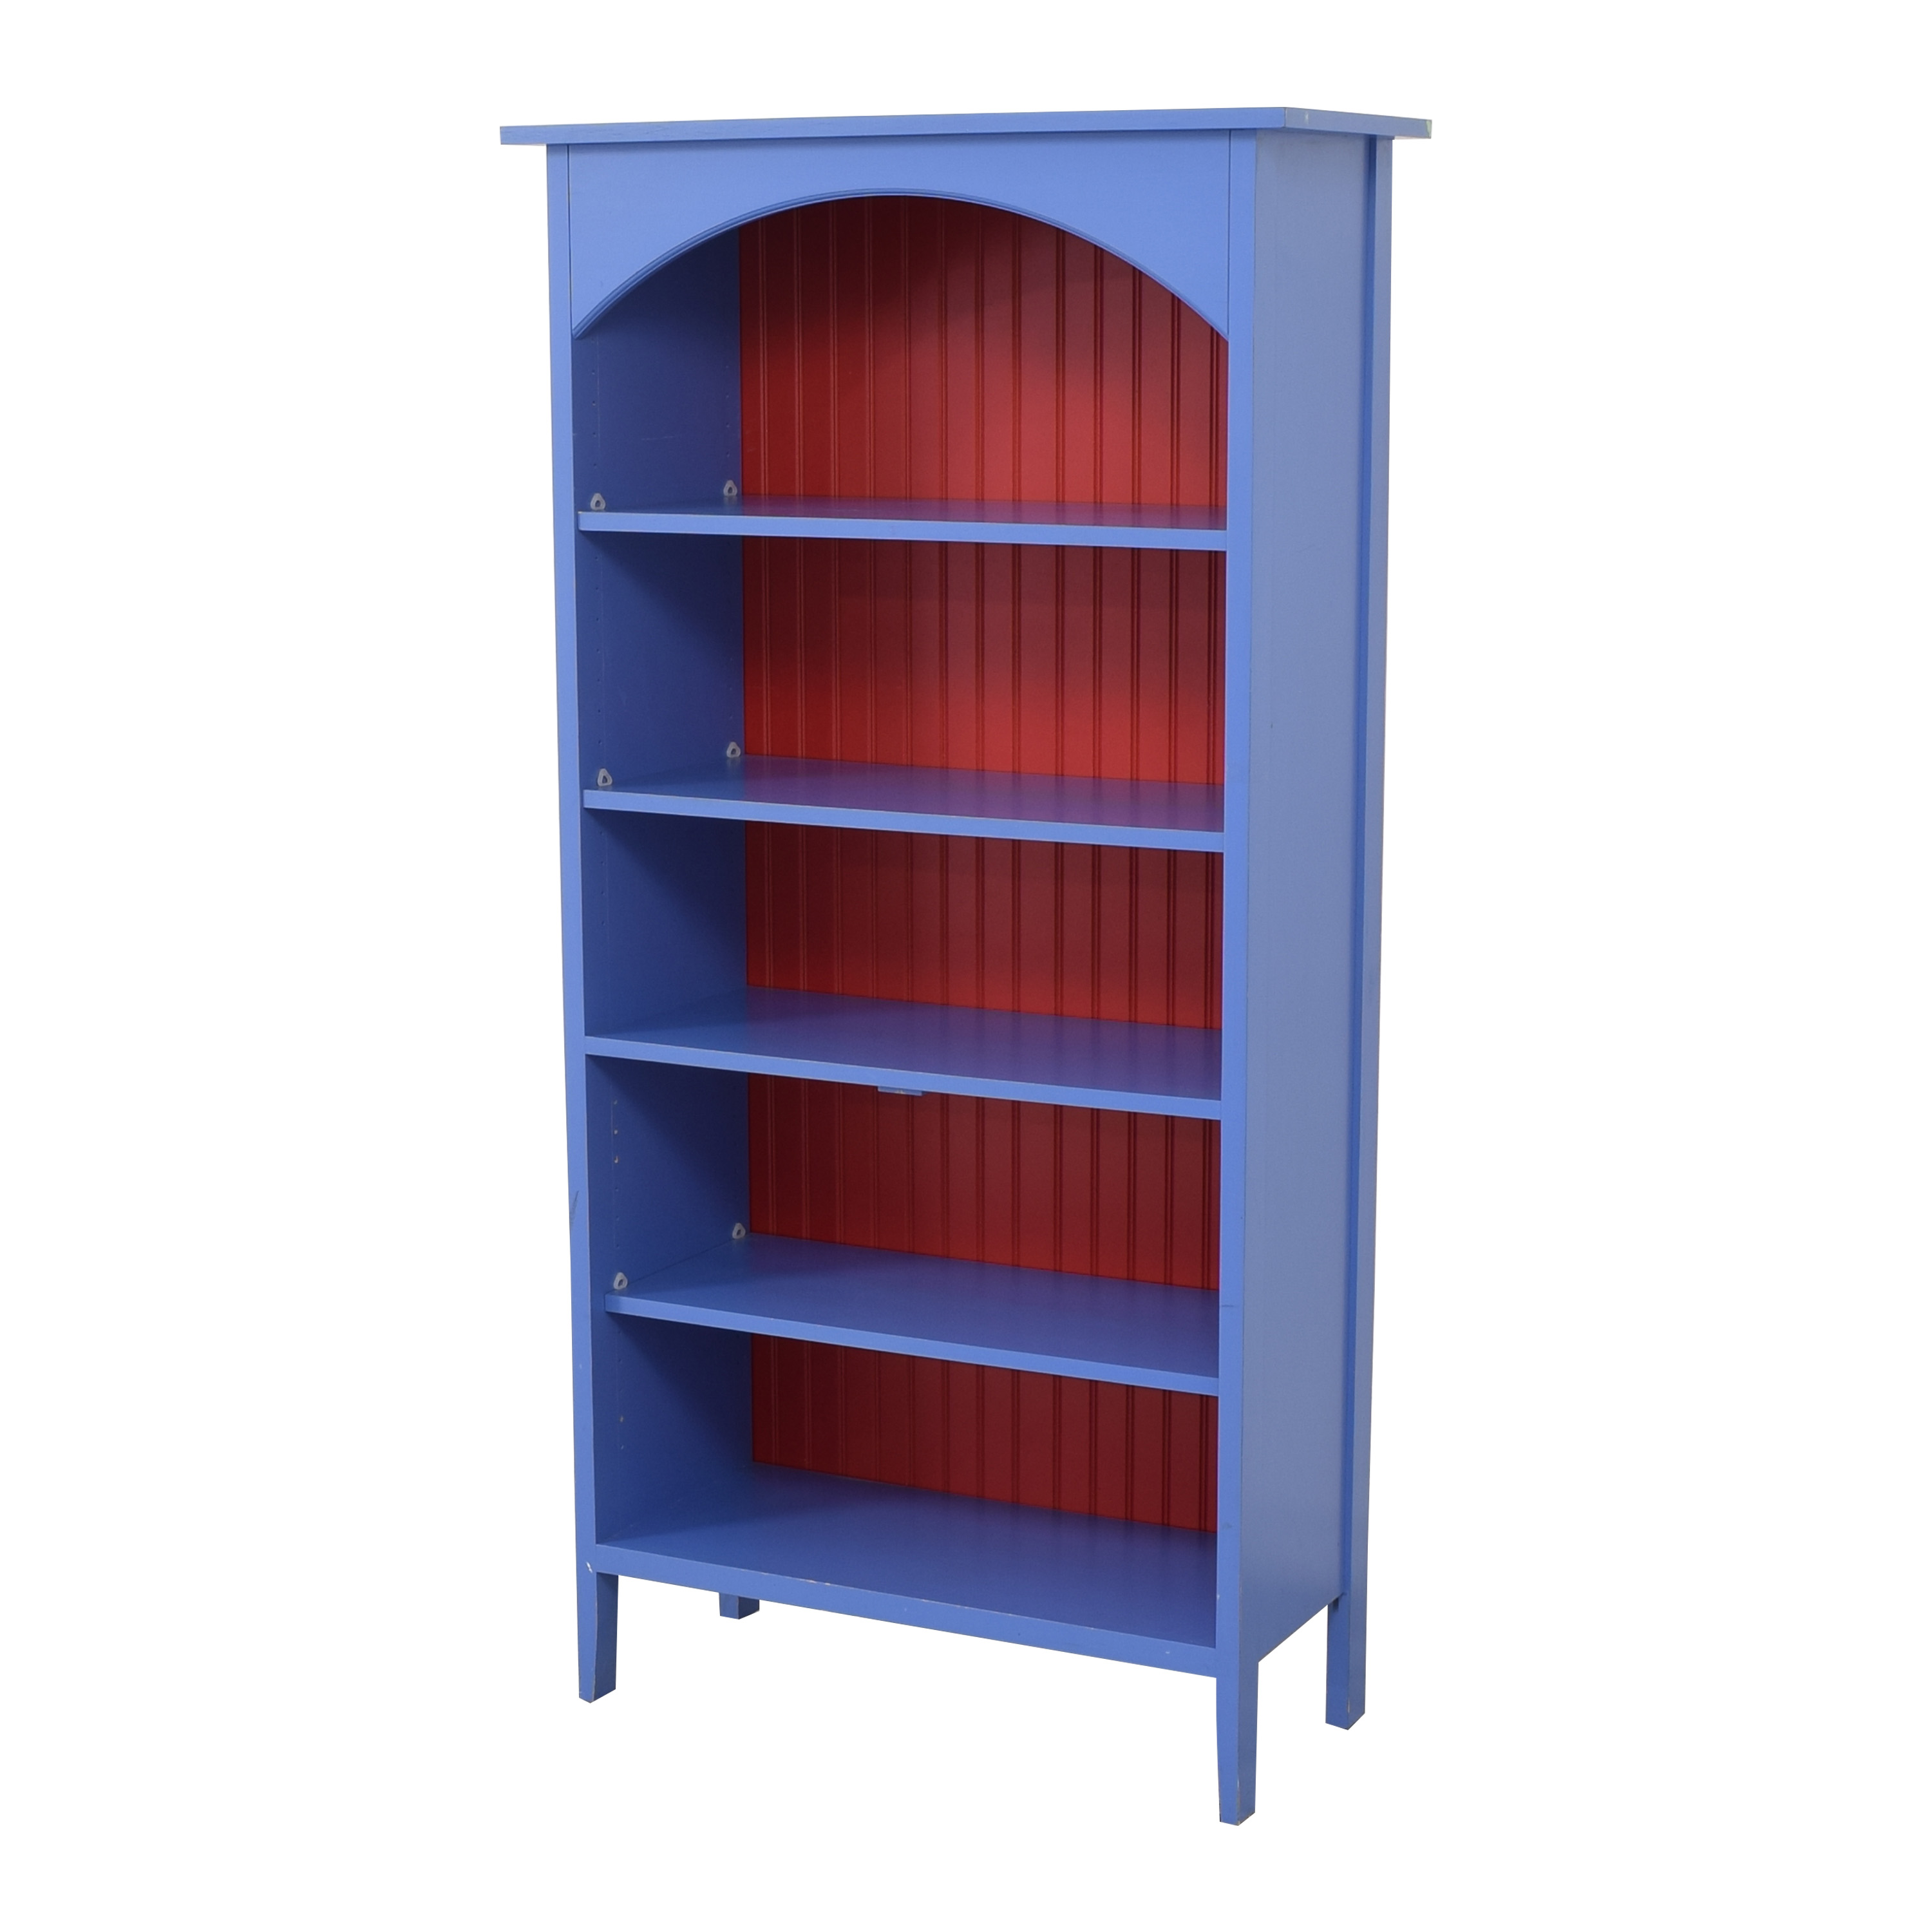 Solid & Basic Solid & Basic Five Shelf Bookcase Bookcases & Shelving